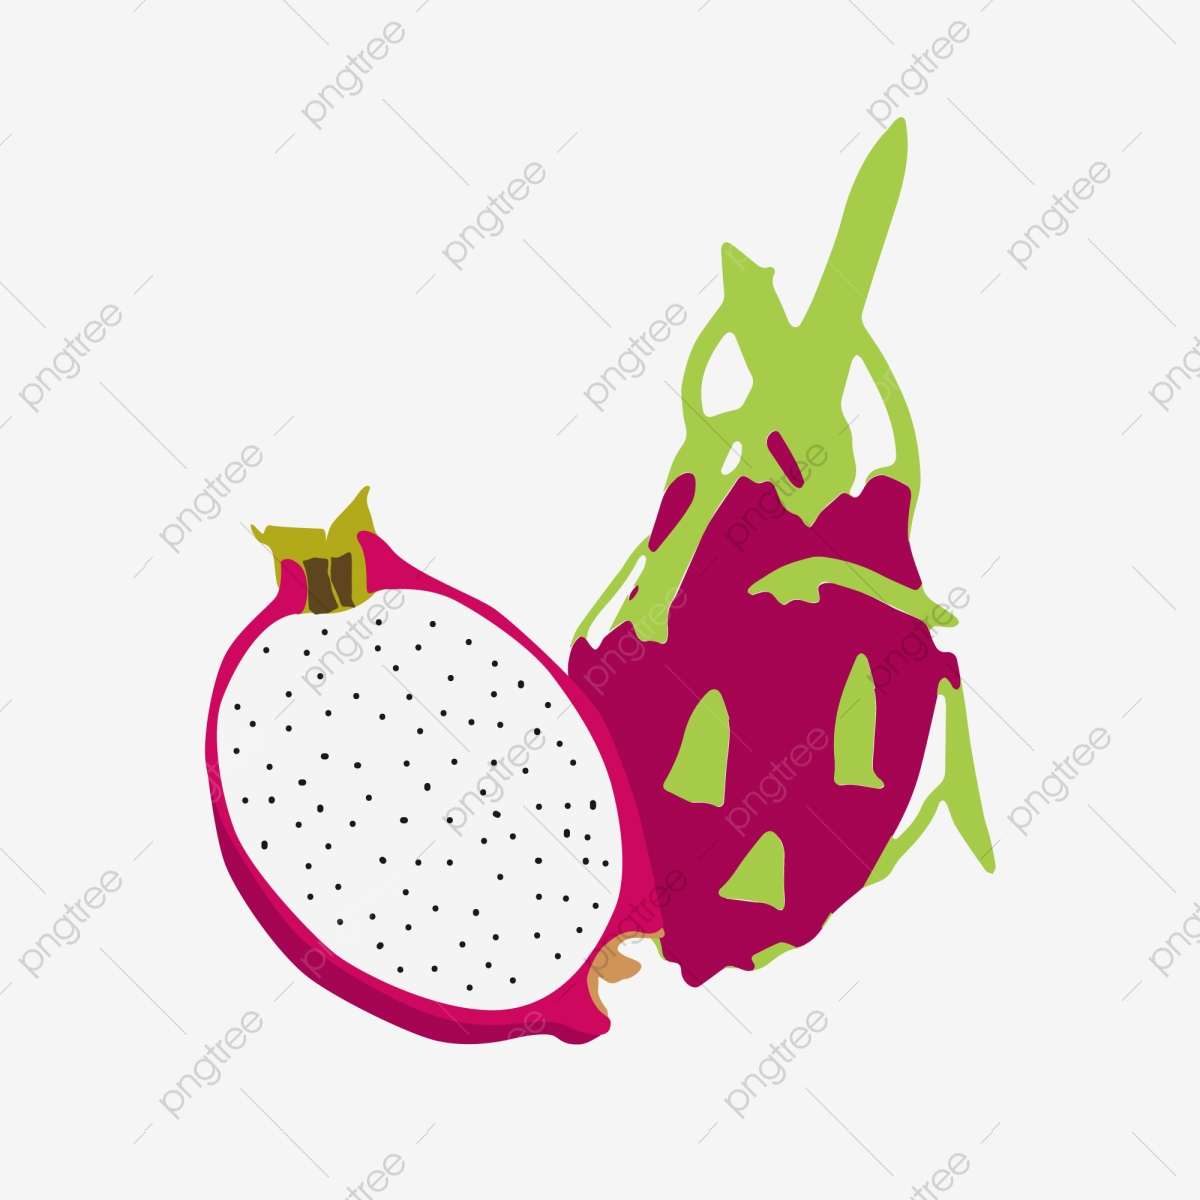 Summer Dragon Fruit Tropical Fruit Red Skin, Cut Open, White.